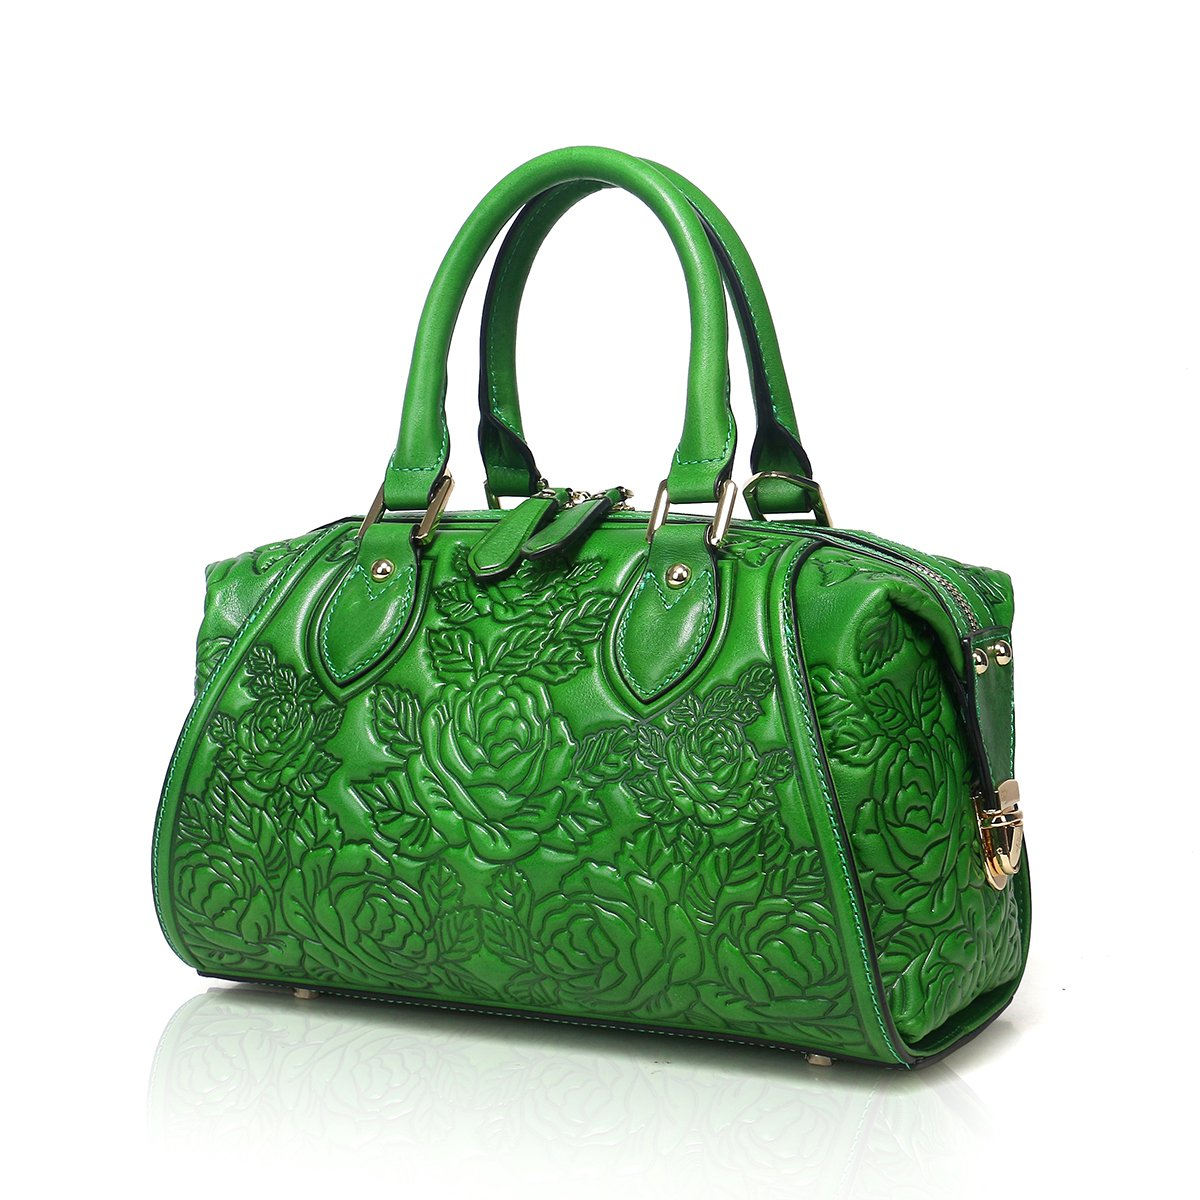 APHISON Designer Unique Embossed Floral Header Layer Cowhide Tote Style Ladies Top Handle Bags Handbags (Green)